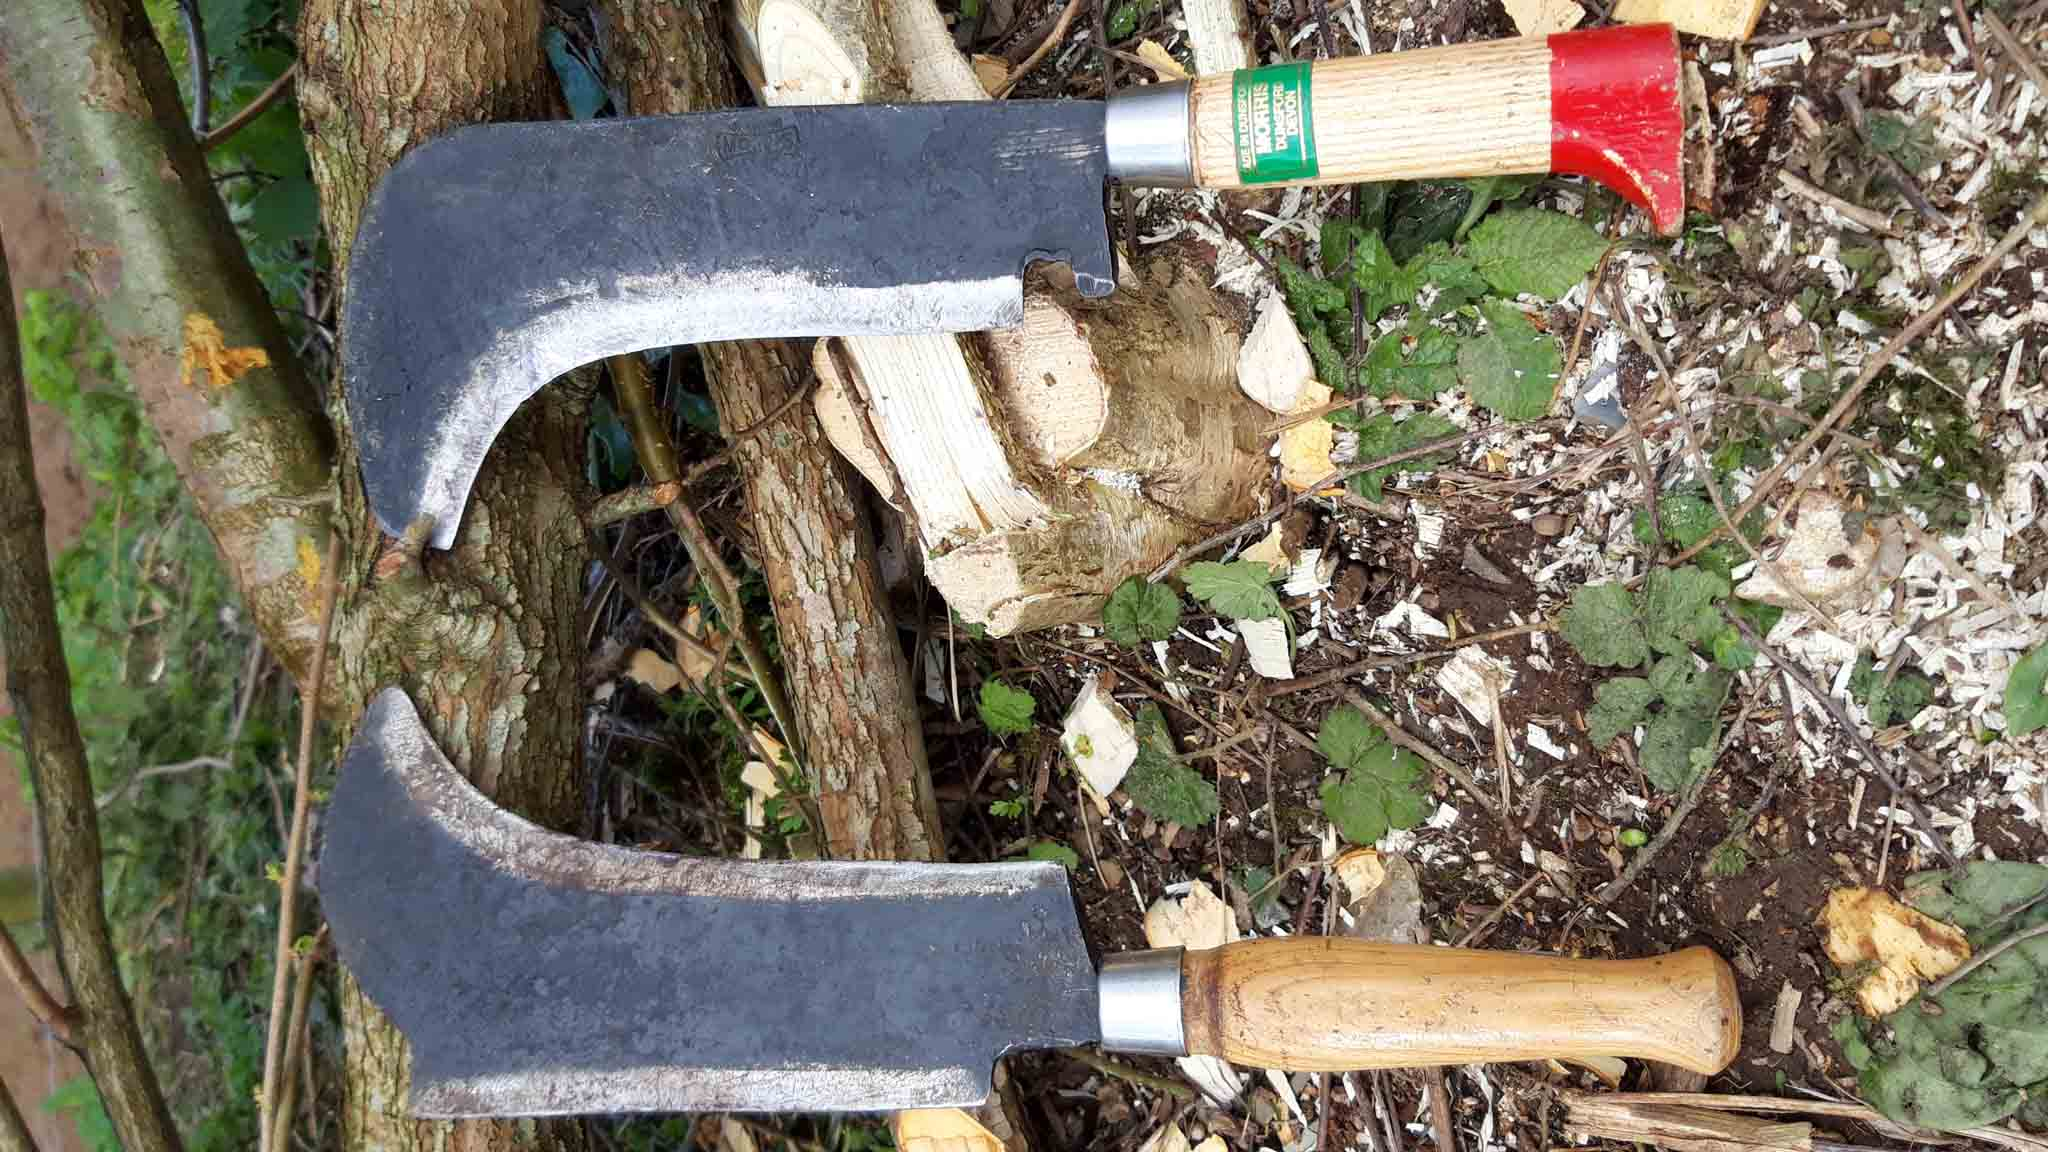 Tools used in hedge laying process. Credit: Vicky Churchhill